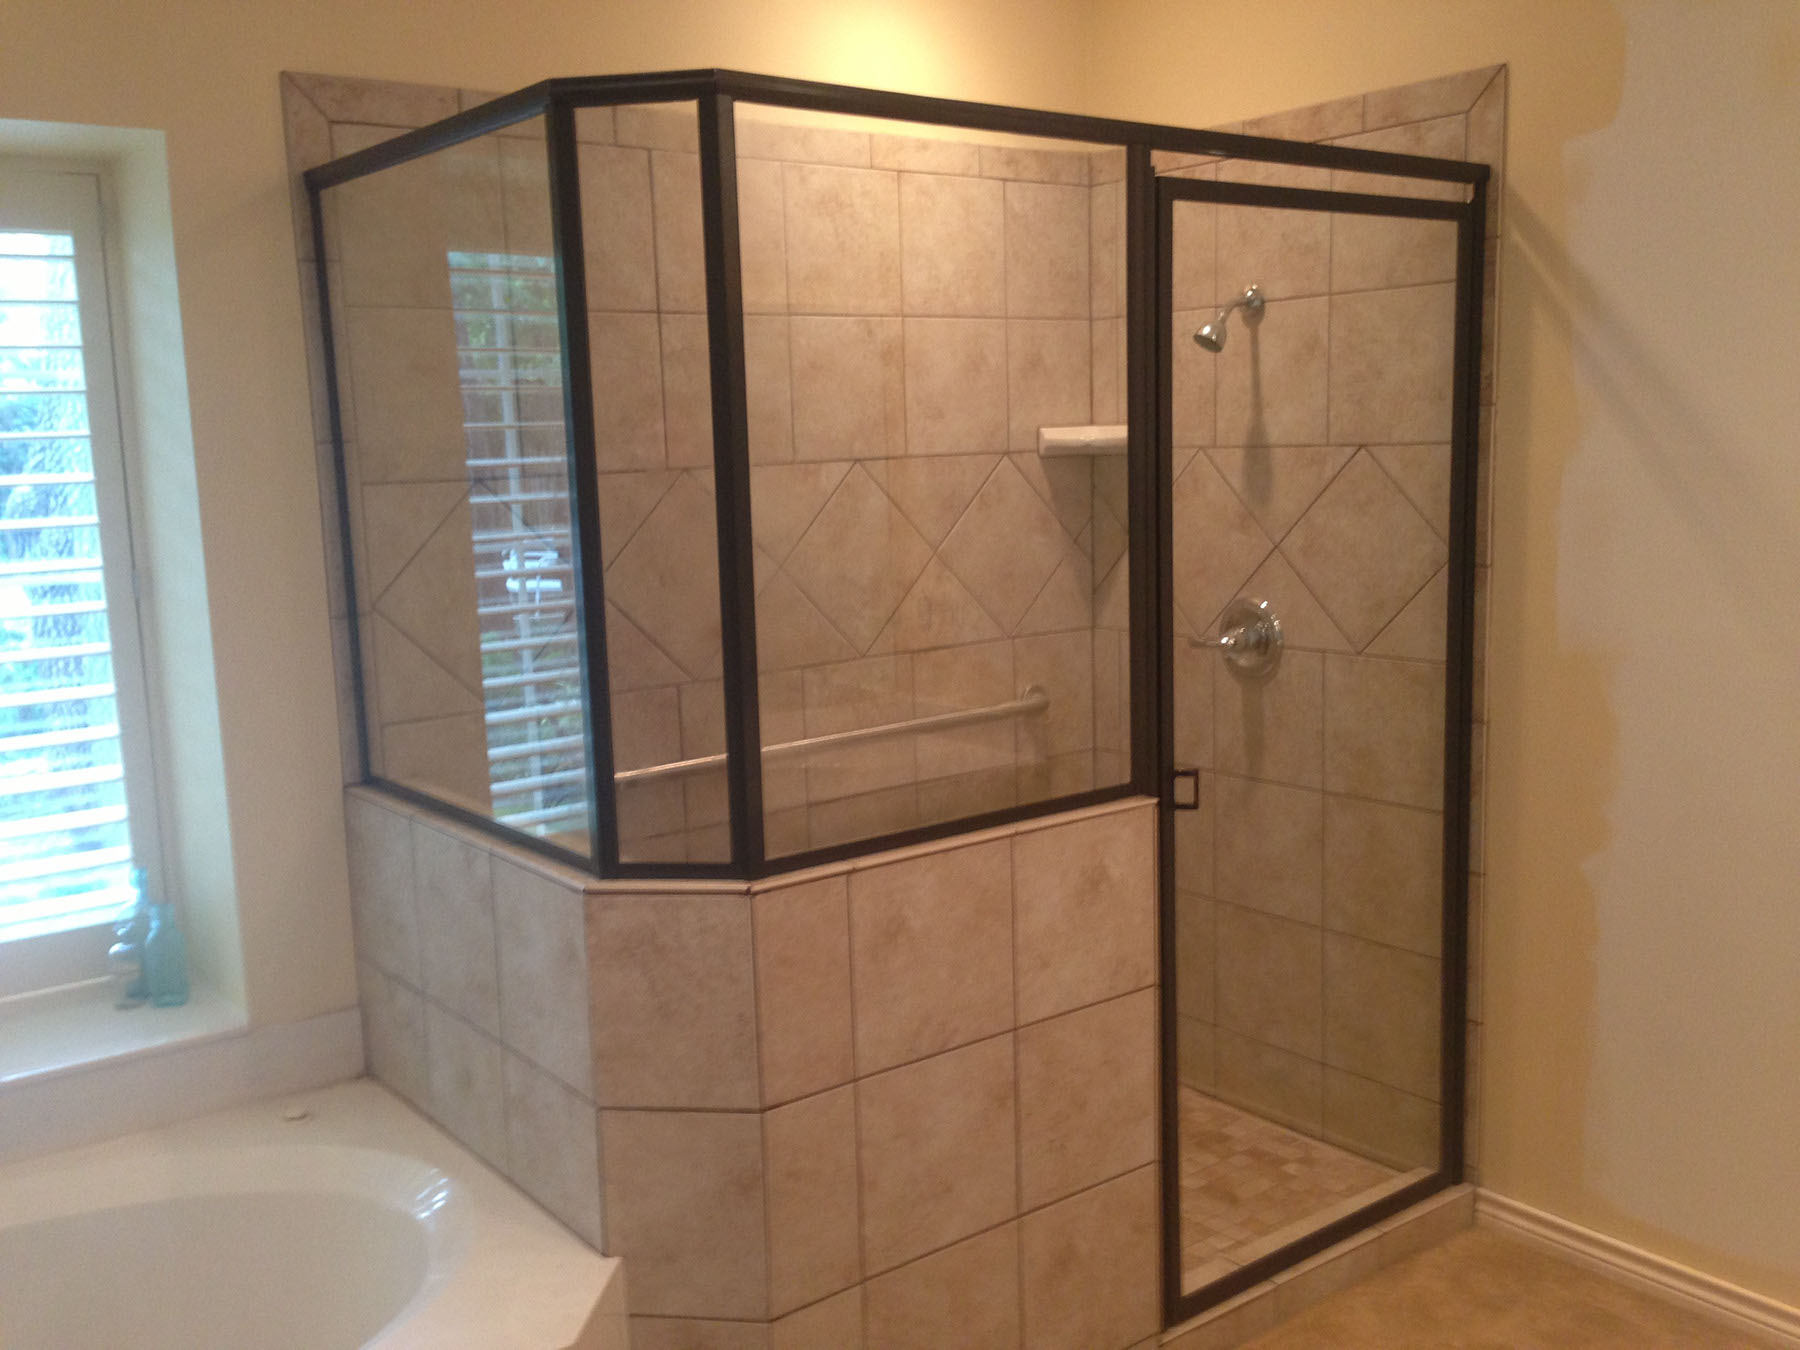 Denver Shower Glass Save On Shower Glass Semi Frameless